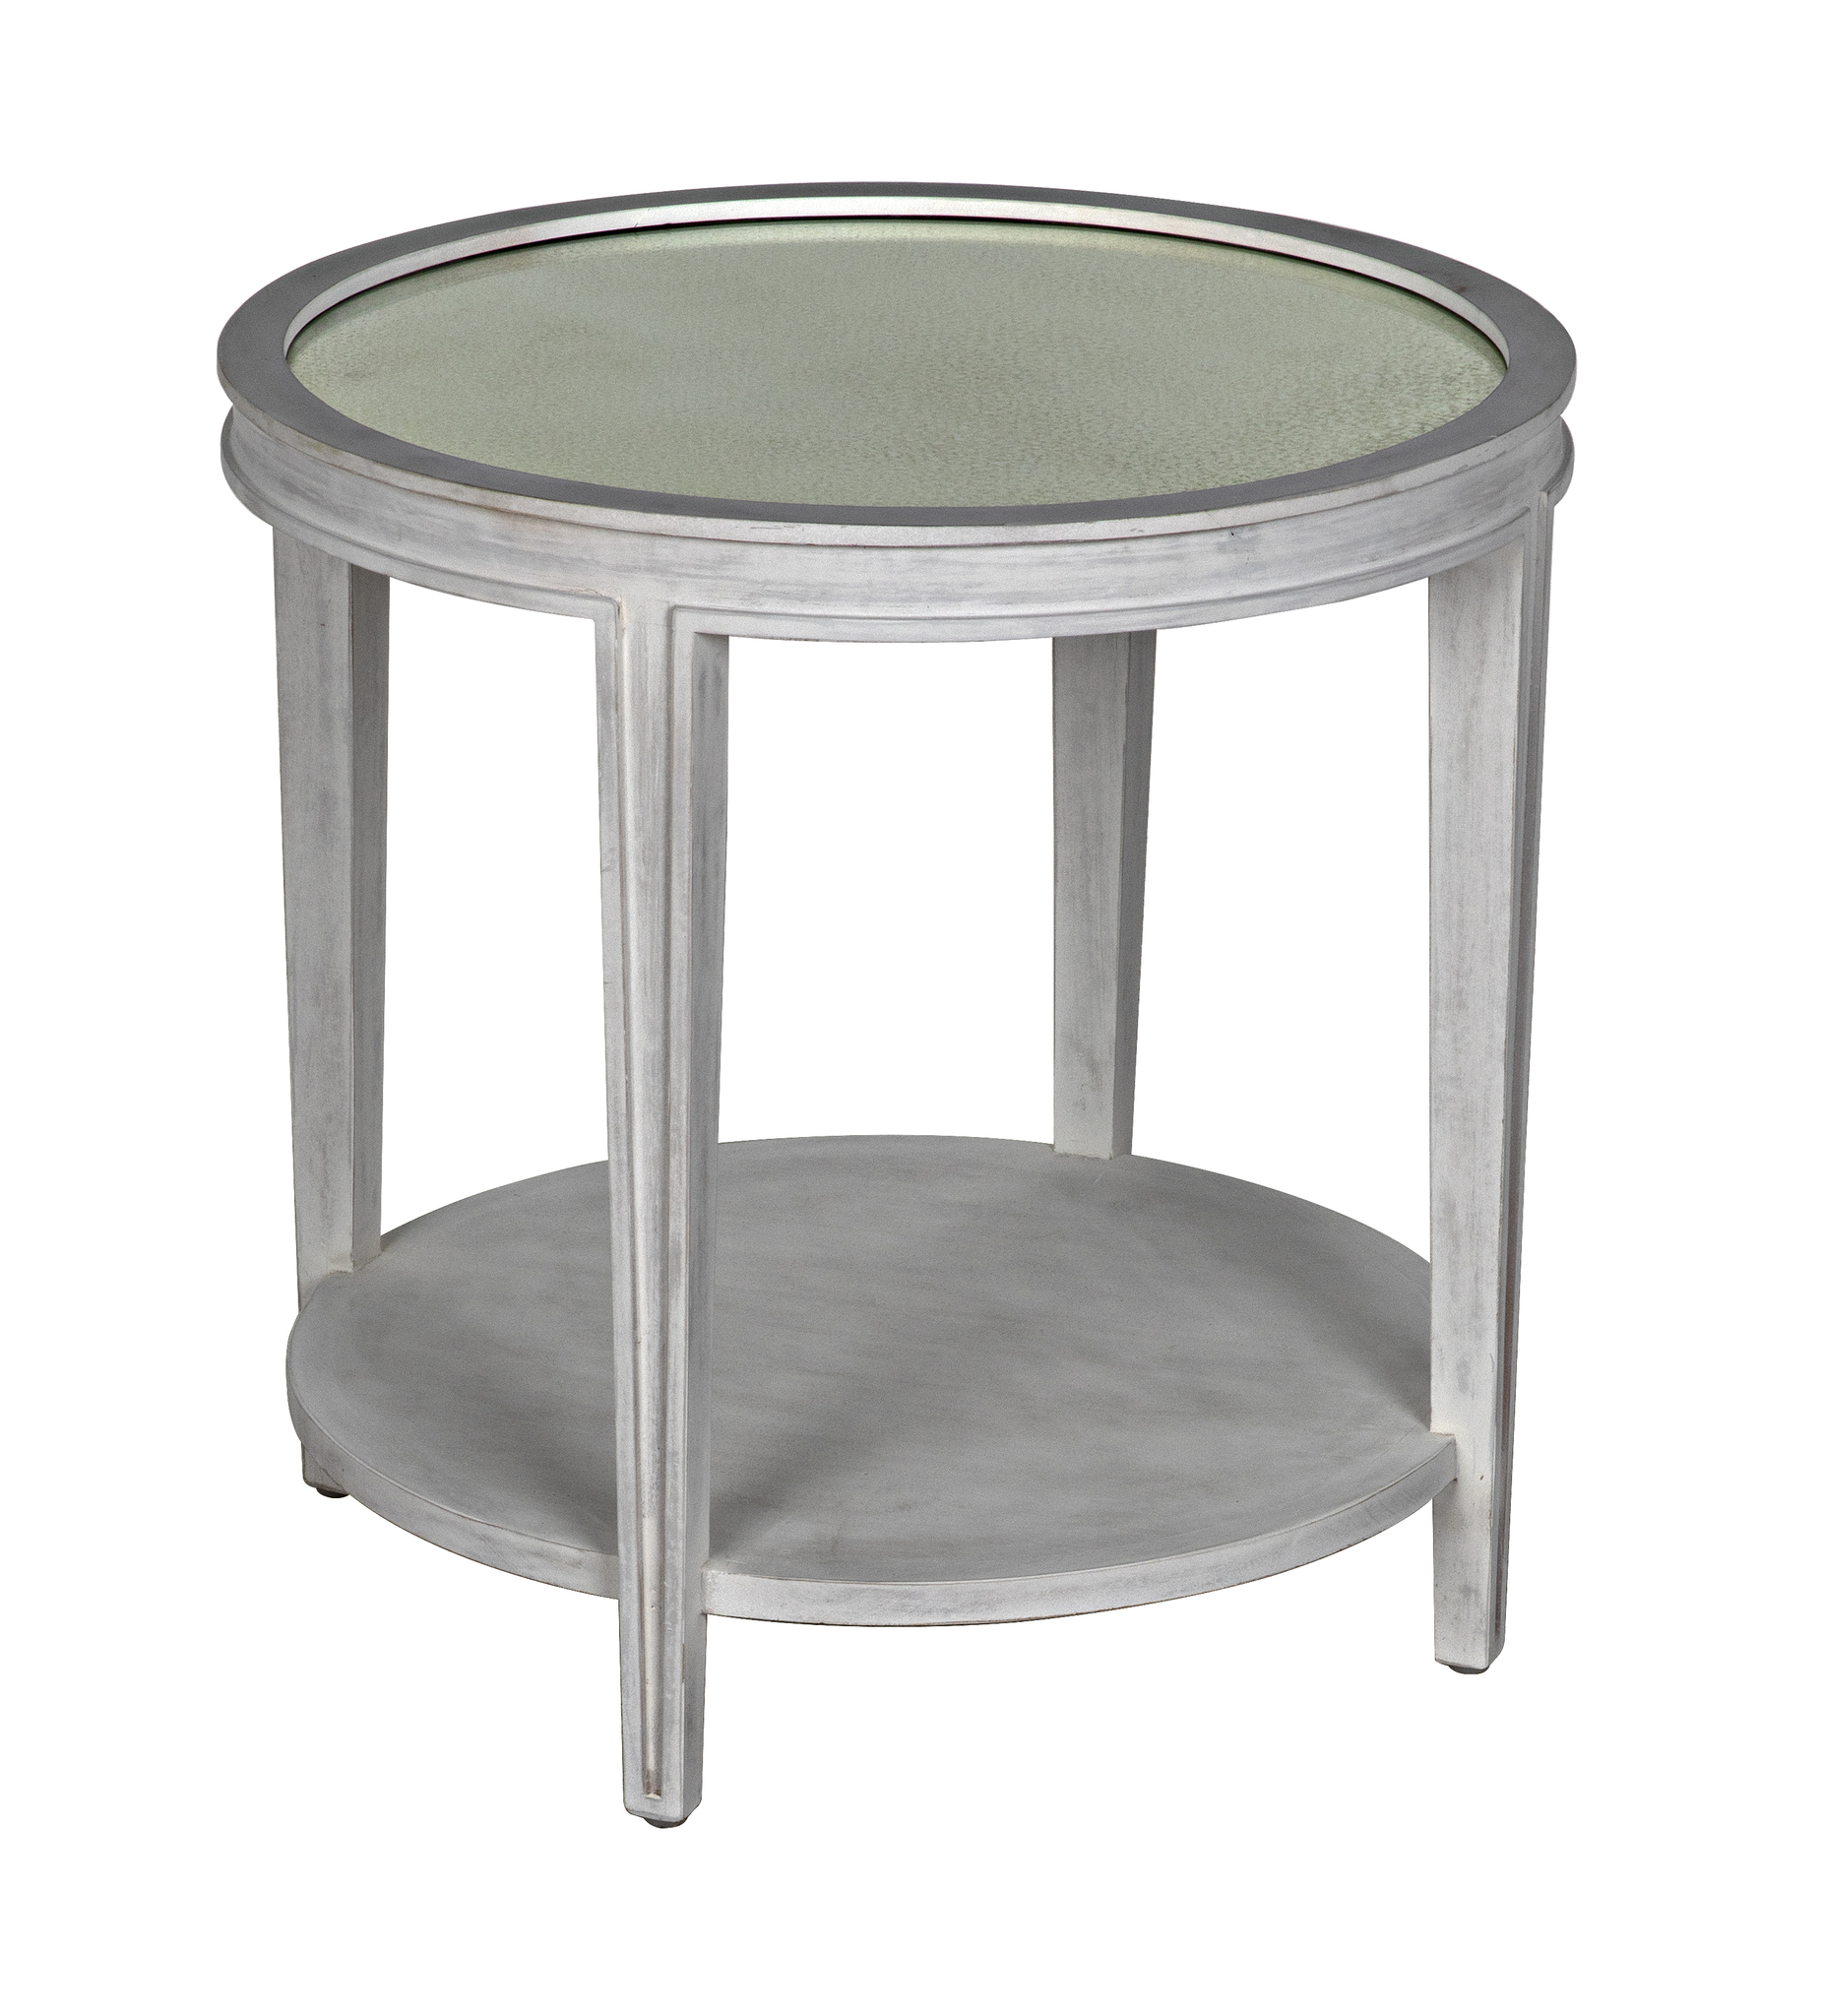 QS Imperial Side Table White Wash accent tables